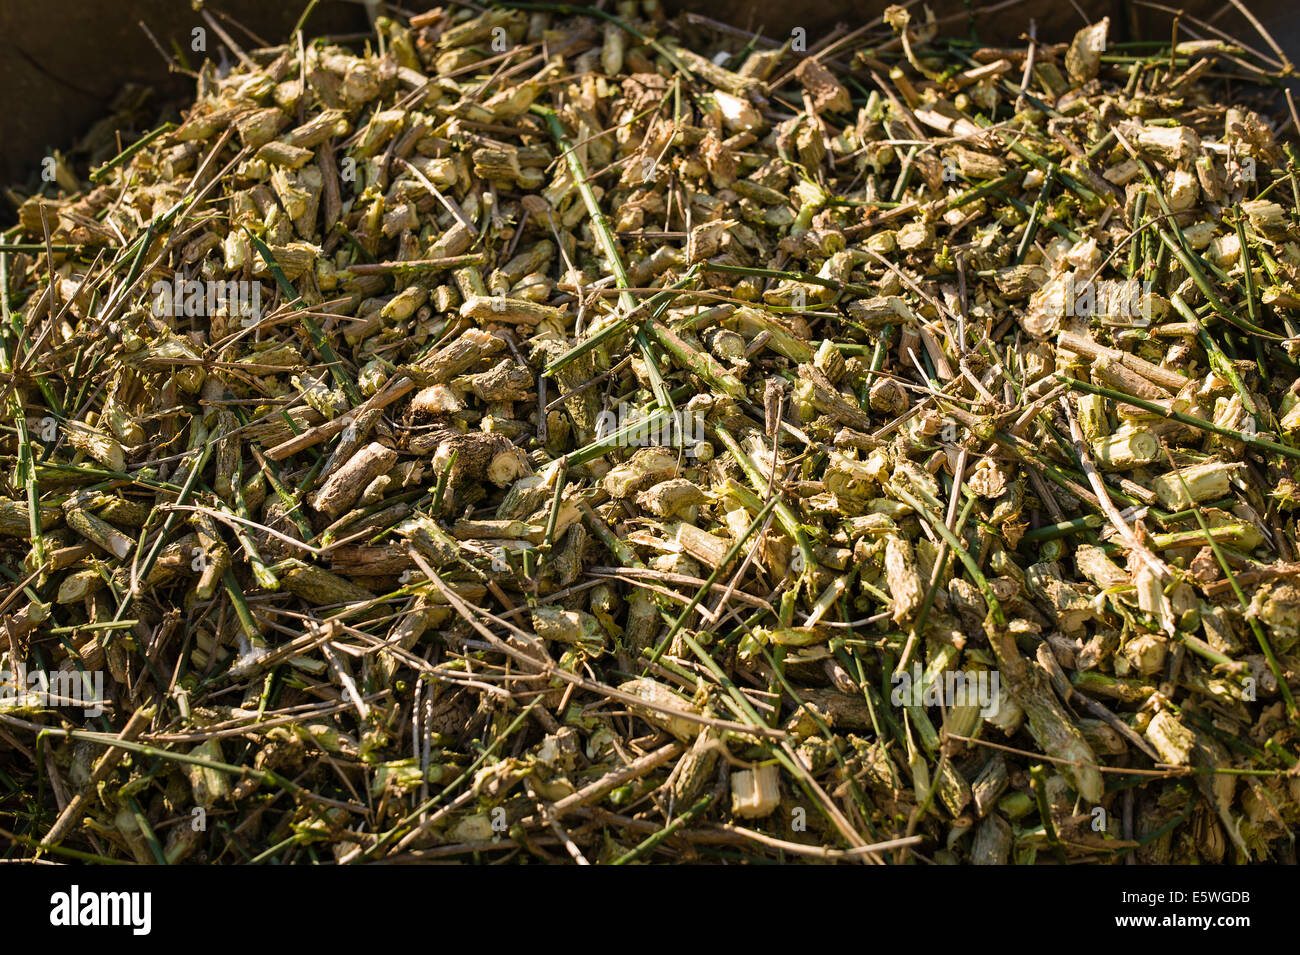 Shreddings of woody material ready for use on garden - Stock Image